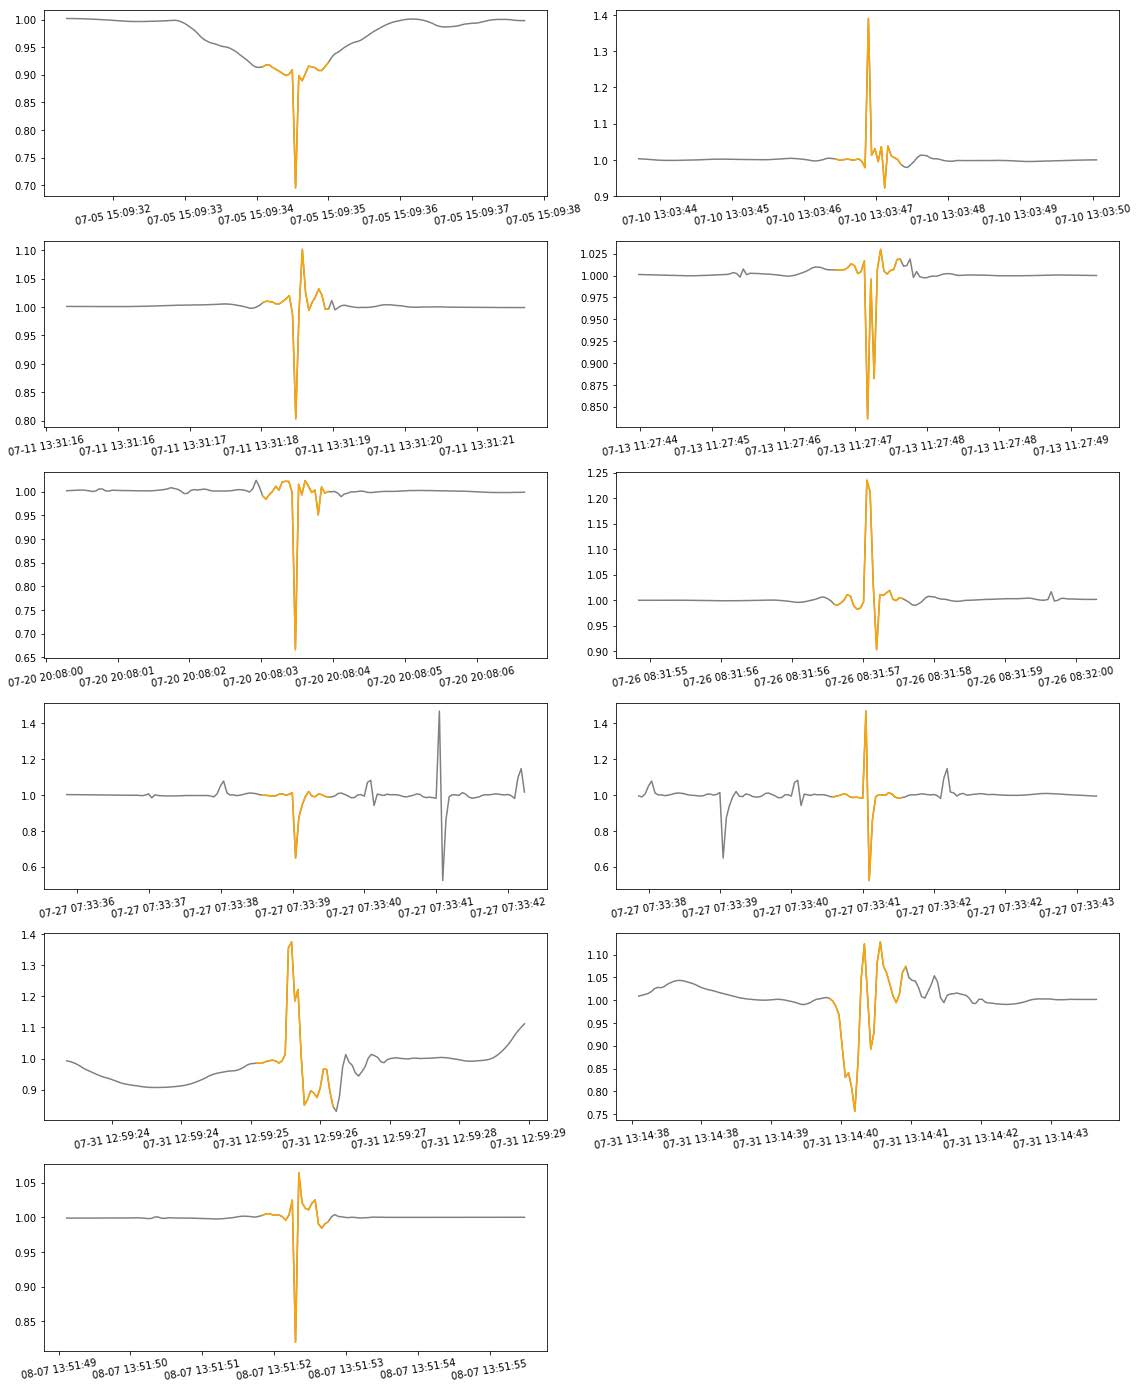 Anomalies detected by the SOM algorithm